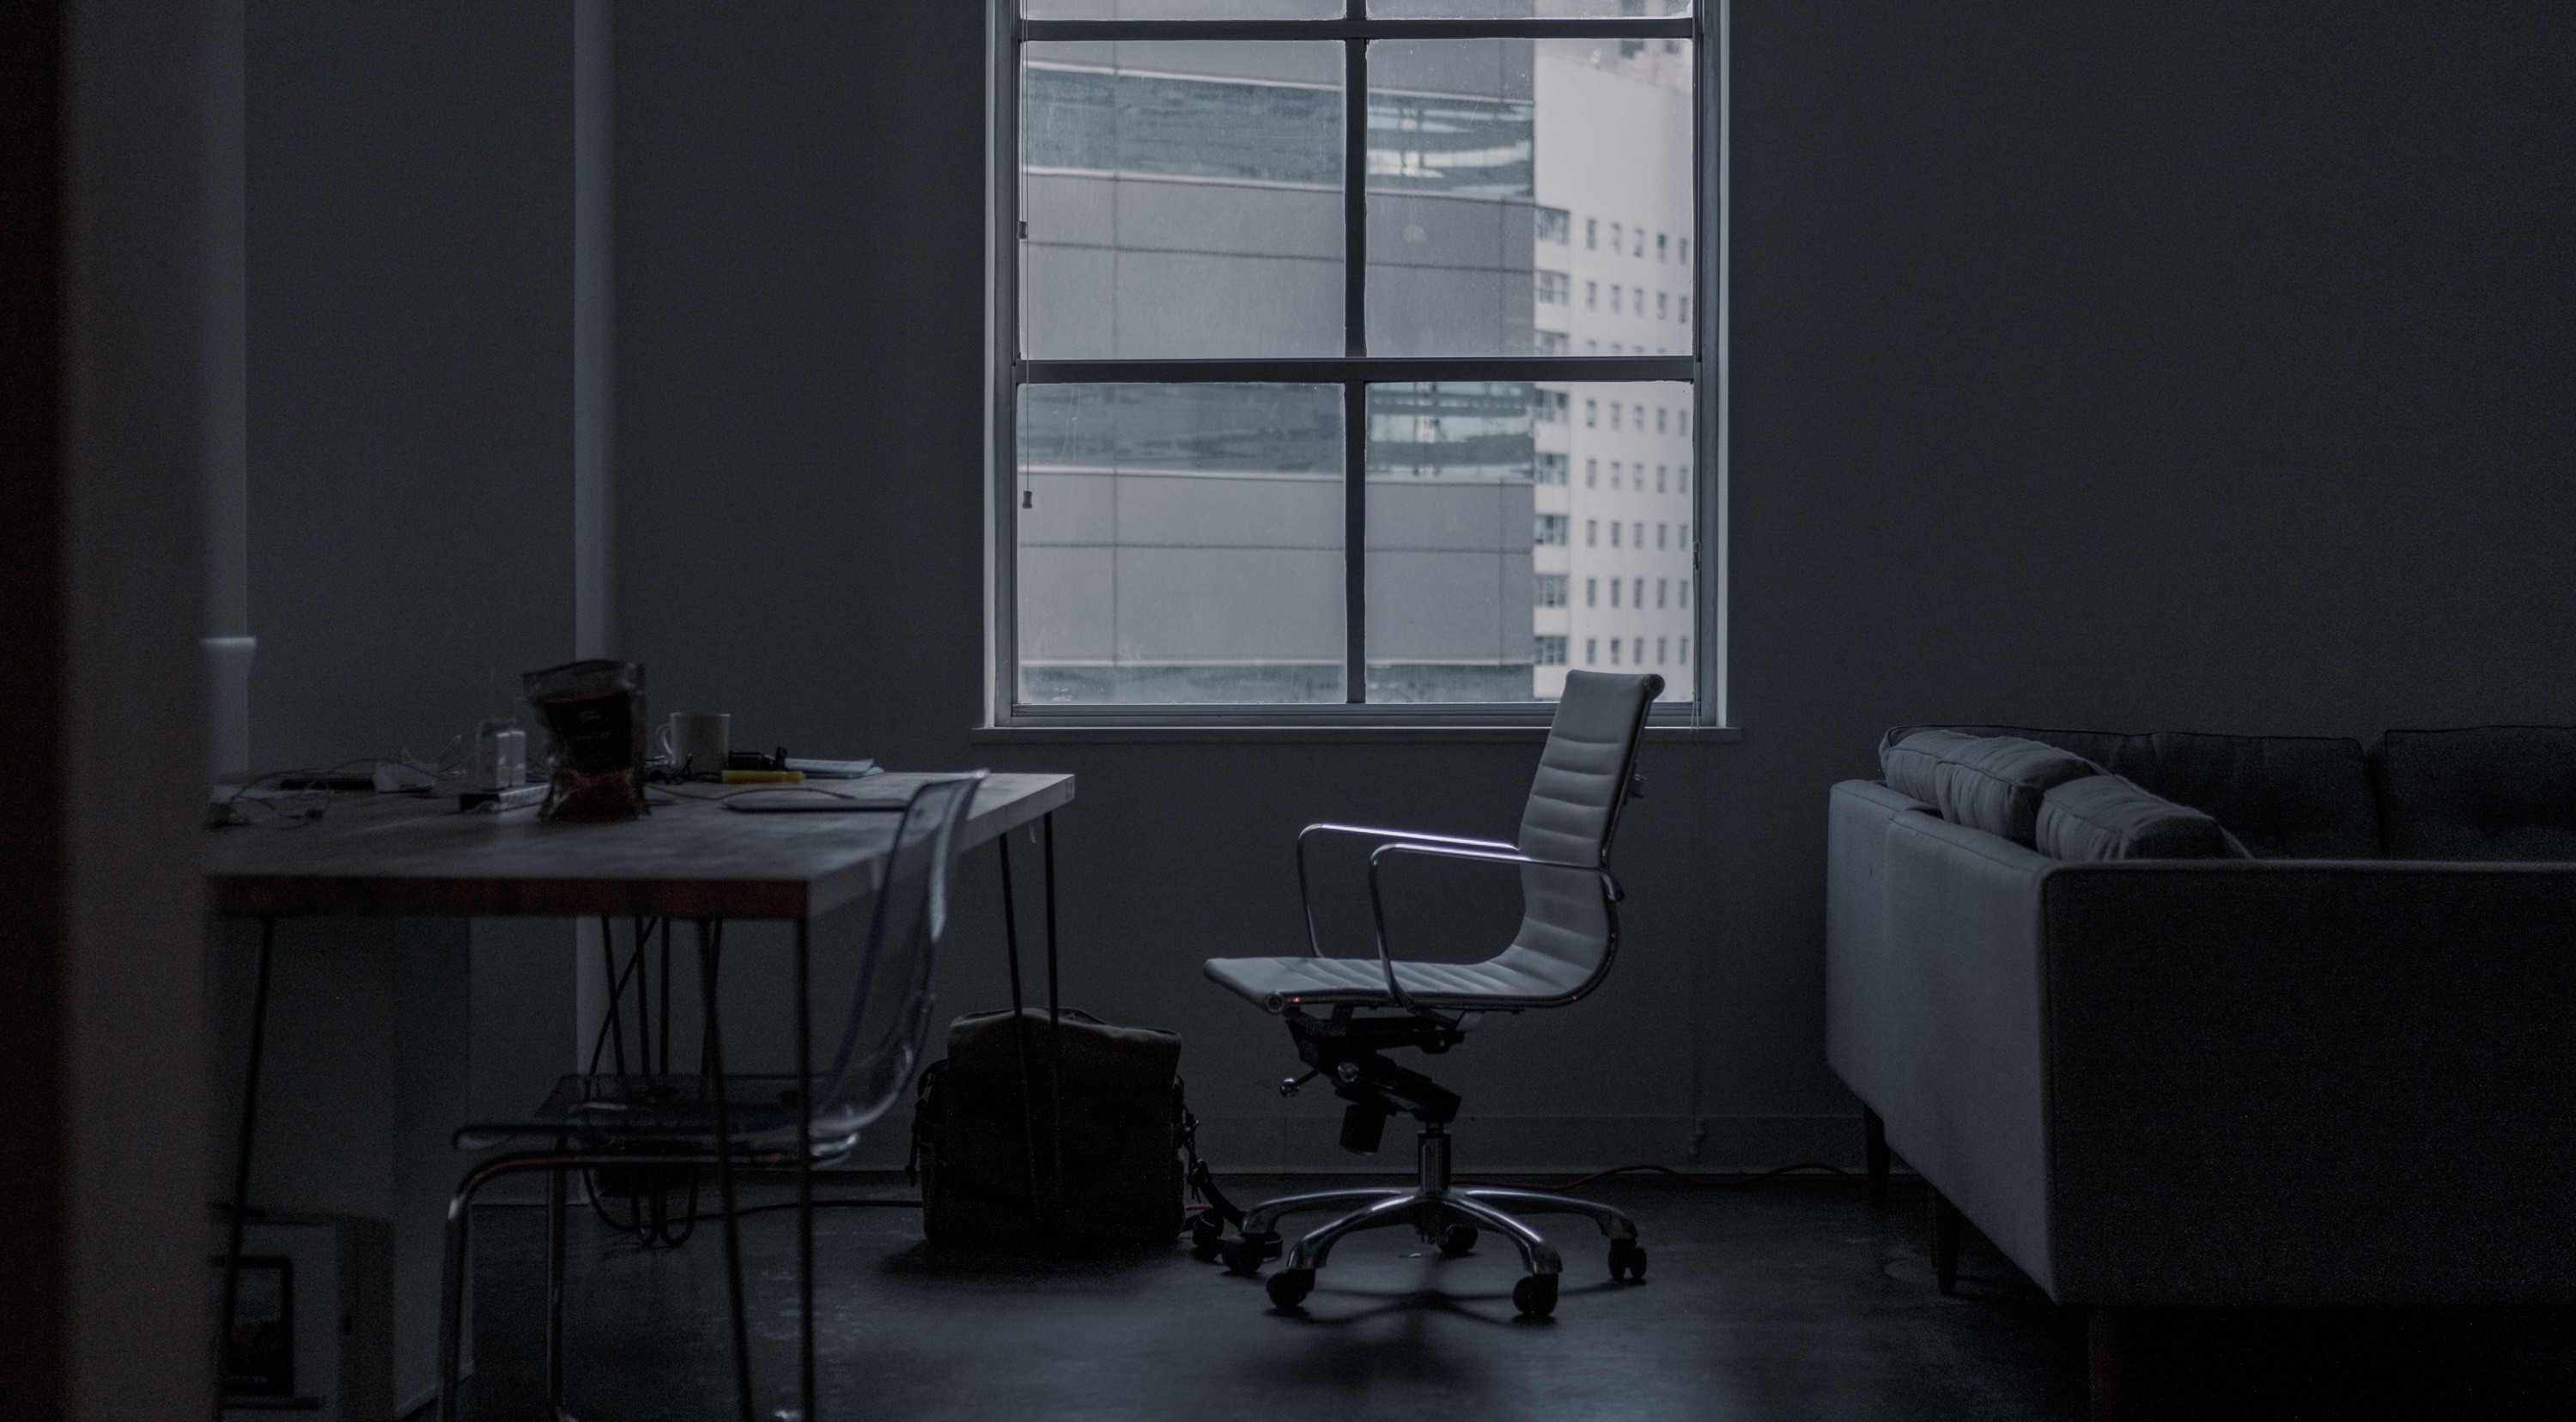 Minimalist Desk Chair Office Minimal Setup Desk Chair Free Stock Photo Negativespace